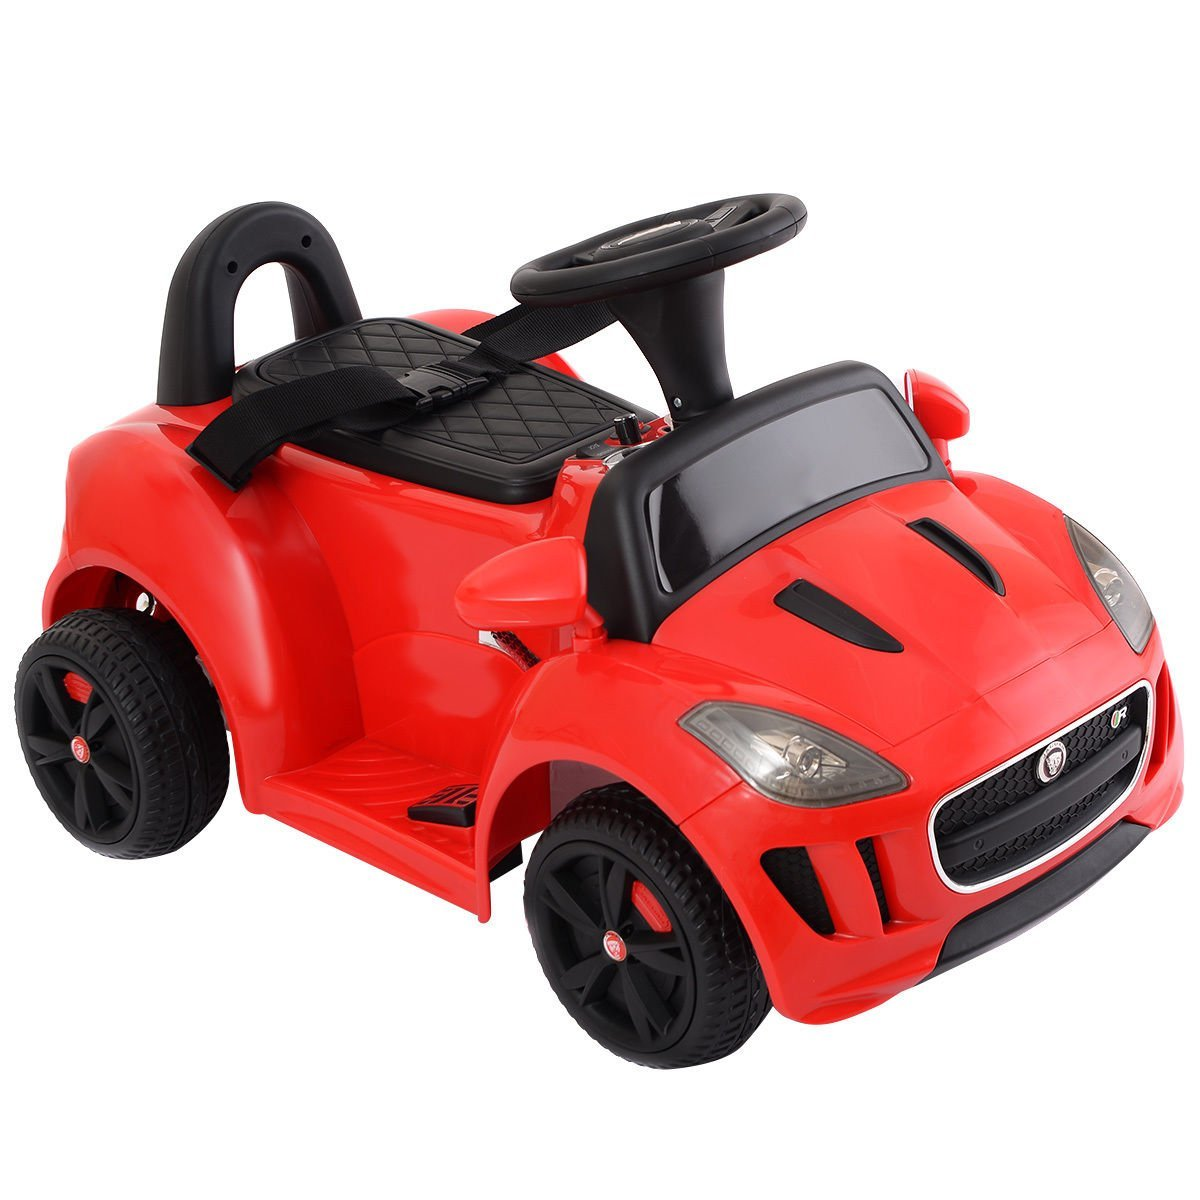 Jaguar Push Car 6V Red - Buy Online on My Tiny Wheels